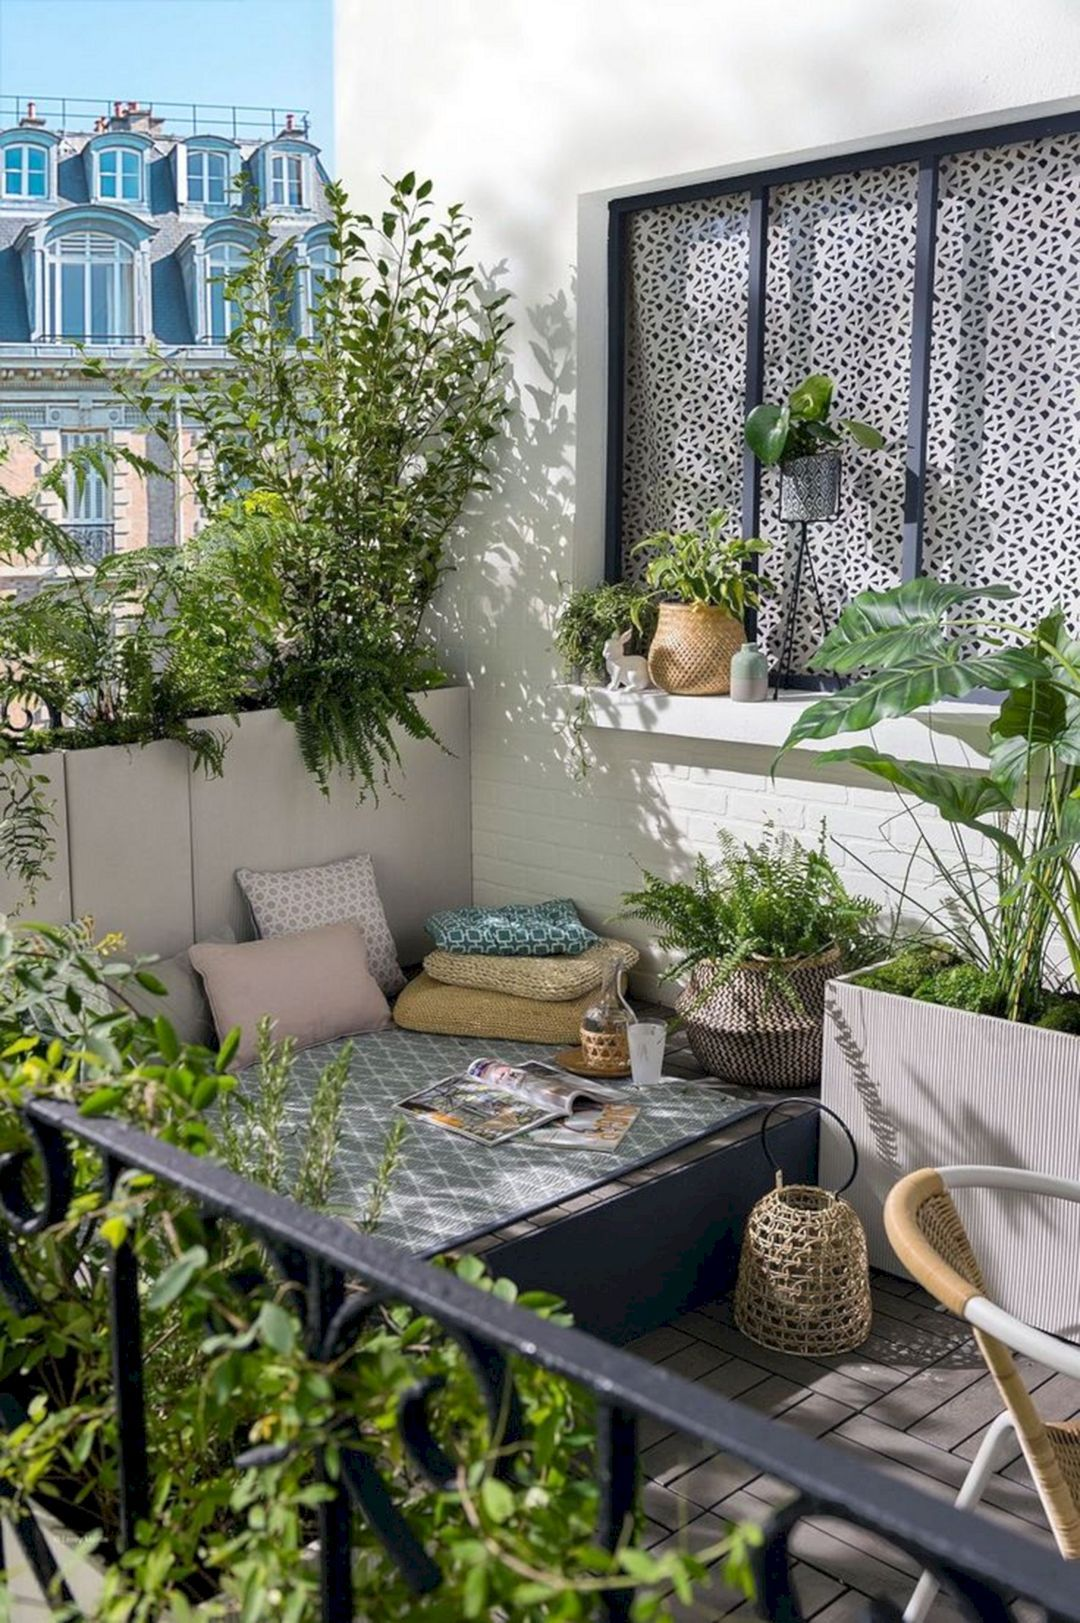 Most Creative Apartment Balcony Decoration Ideas You Must Have 10 Best Pictures Apartment Balcony Decorating Small Balcony Garden Apartment Balcony Garden